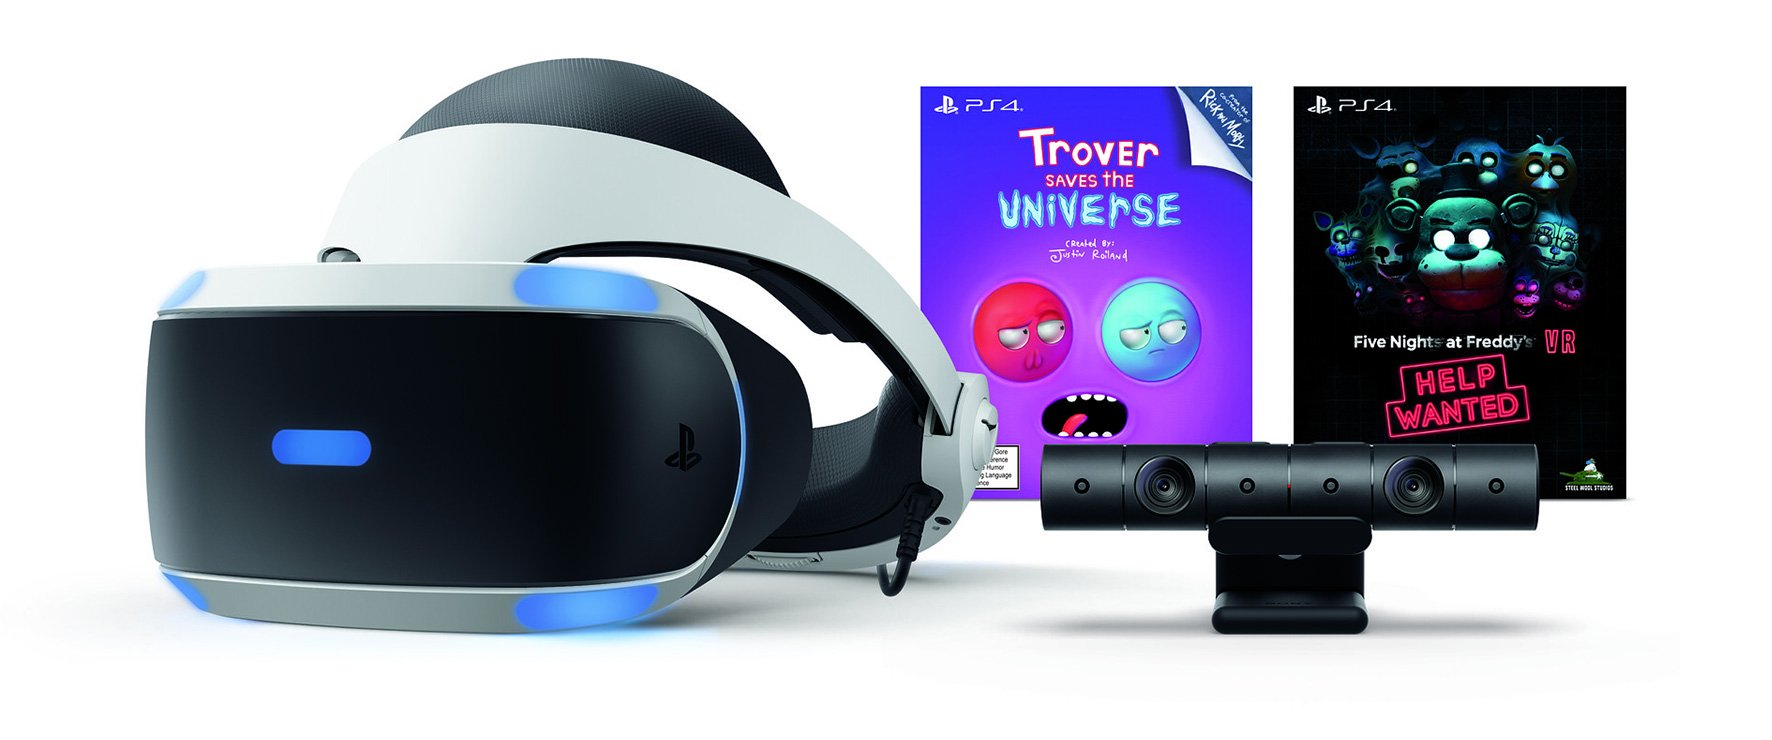 Sony has two more PlayStation VR bundles for 2019 screenshot